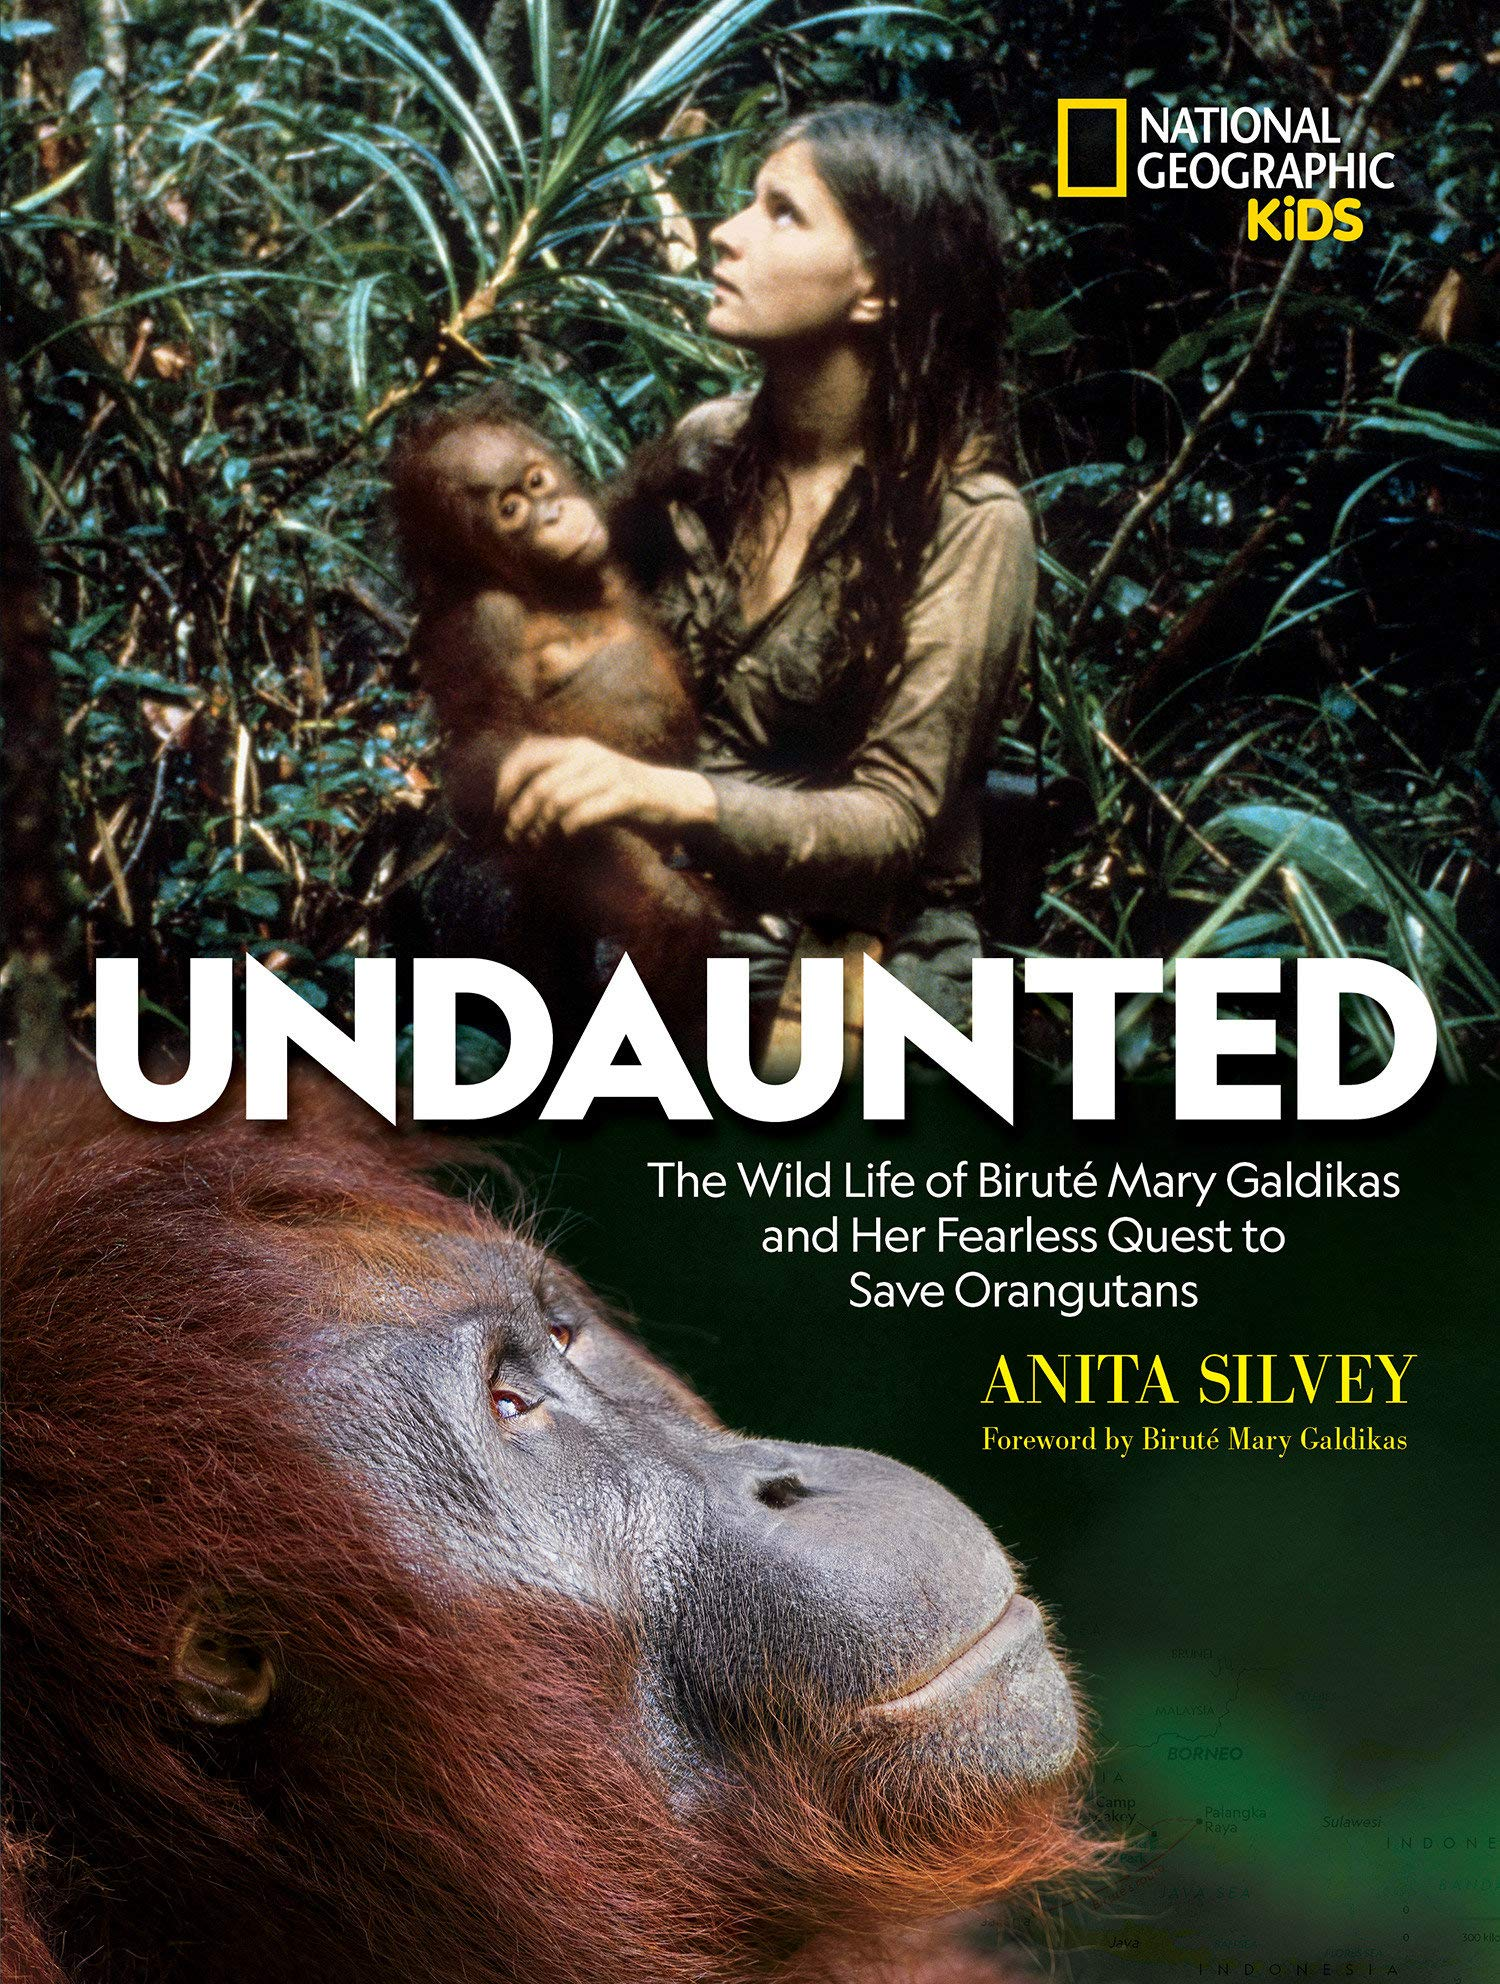 National Geographic Children's Books (May 14, 2019)